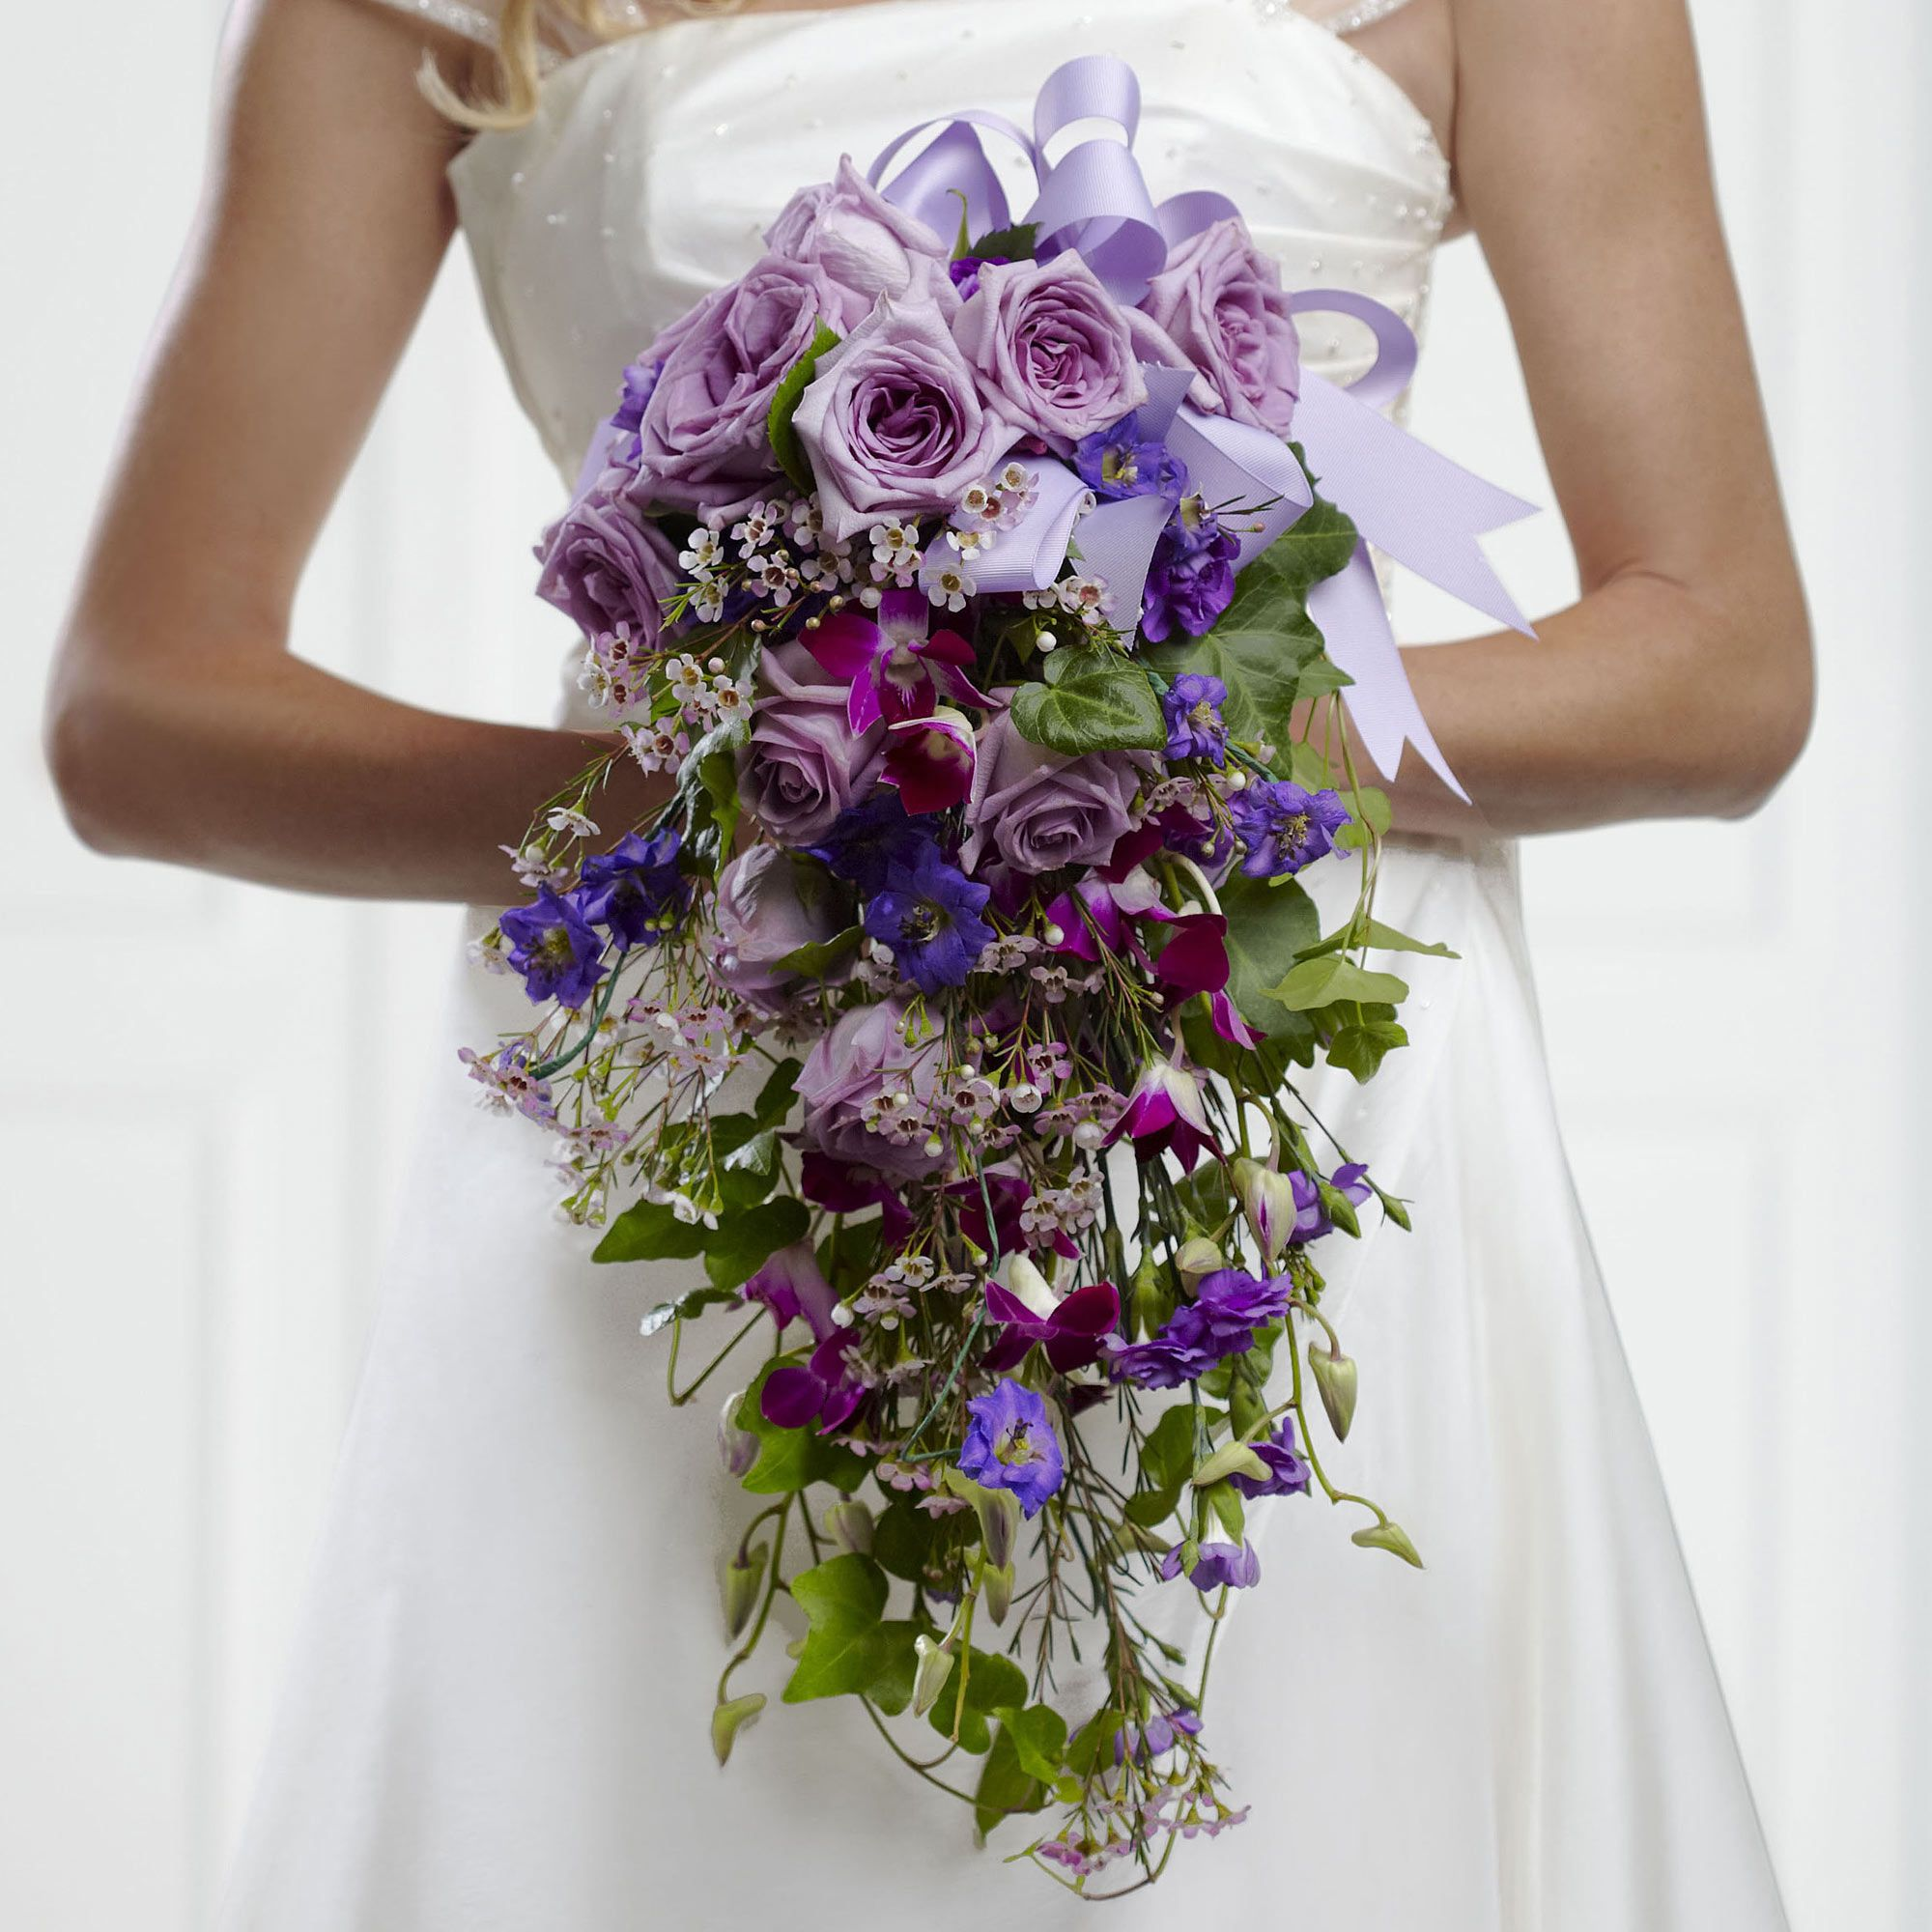 Lavender Rose Gypsophila Bridal Bouquet: This Blissful Purple Wedding Bouquet Has Lavender Roses At